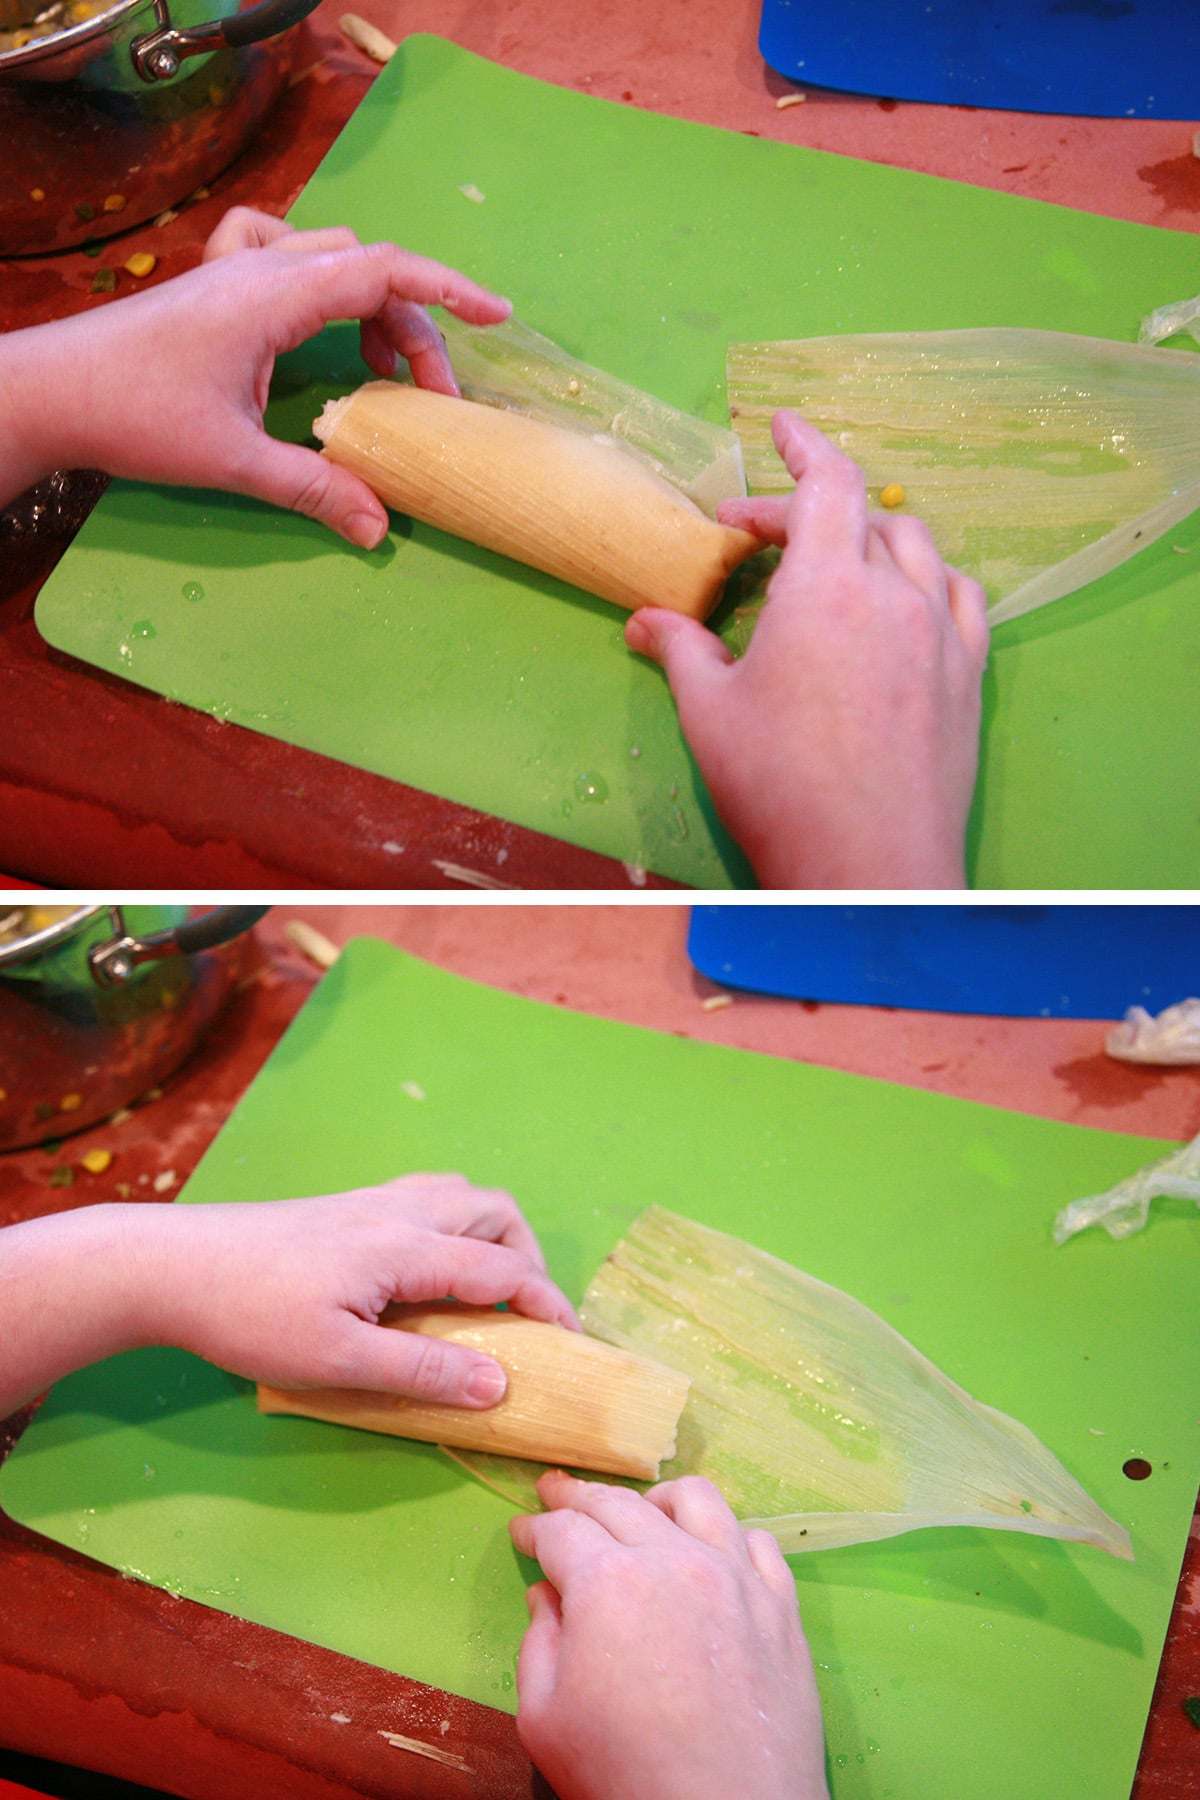 Two hands roll the tamale, as described.